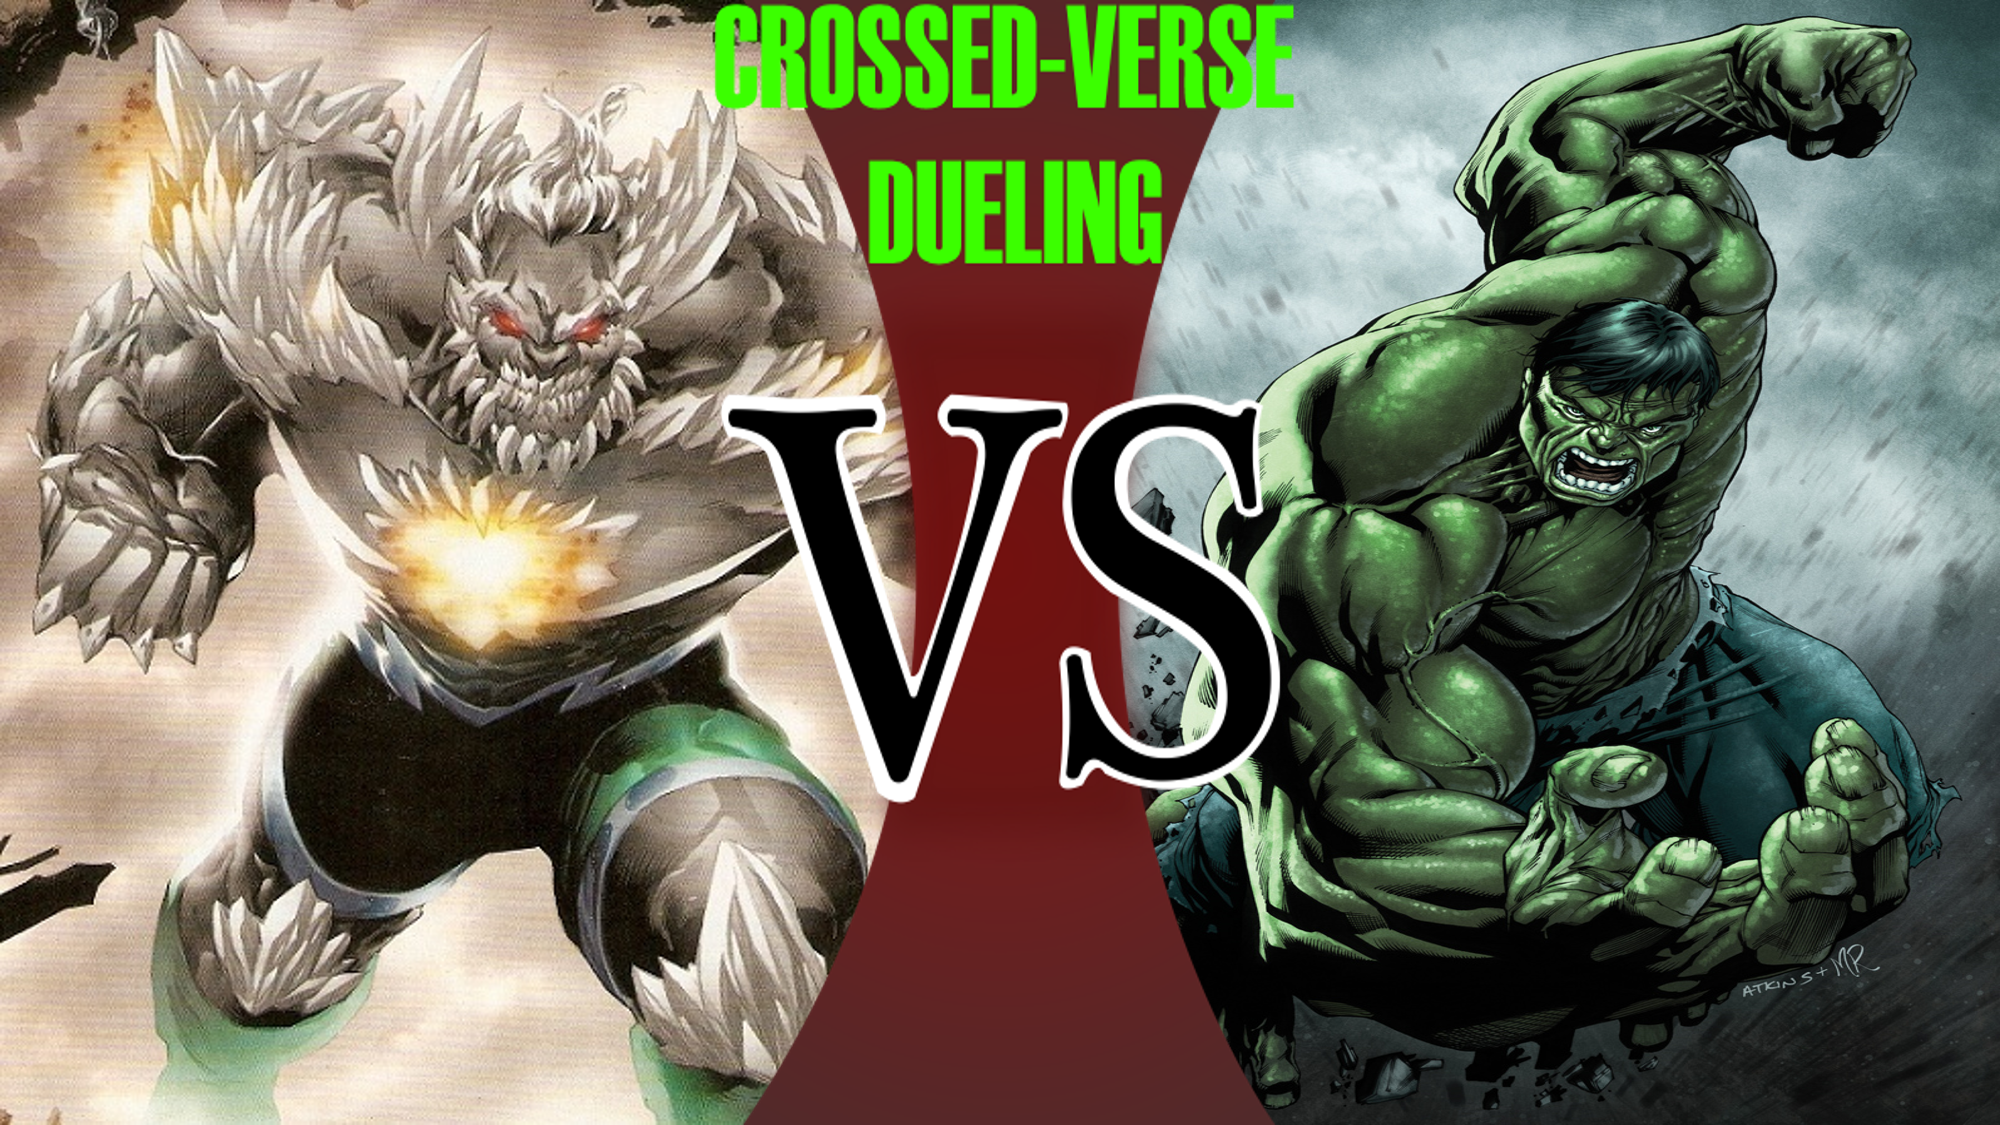 Doomsday VS Hulk | Crossed-Verse Dueling Wiki | FANDOM ...Doomsday Vs Hulk